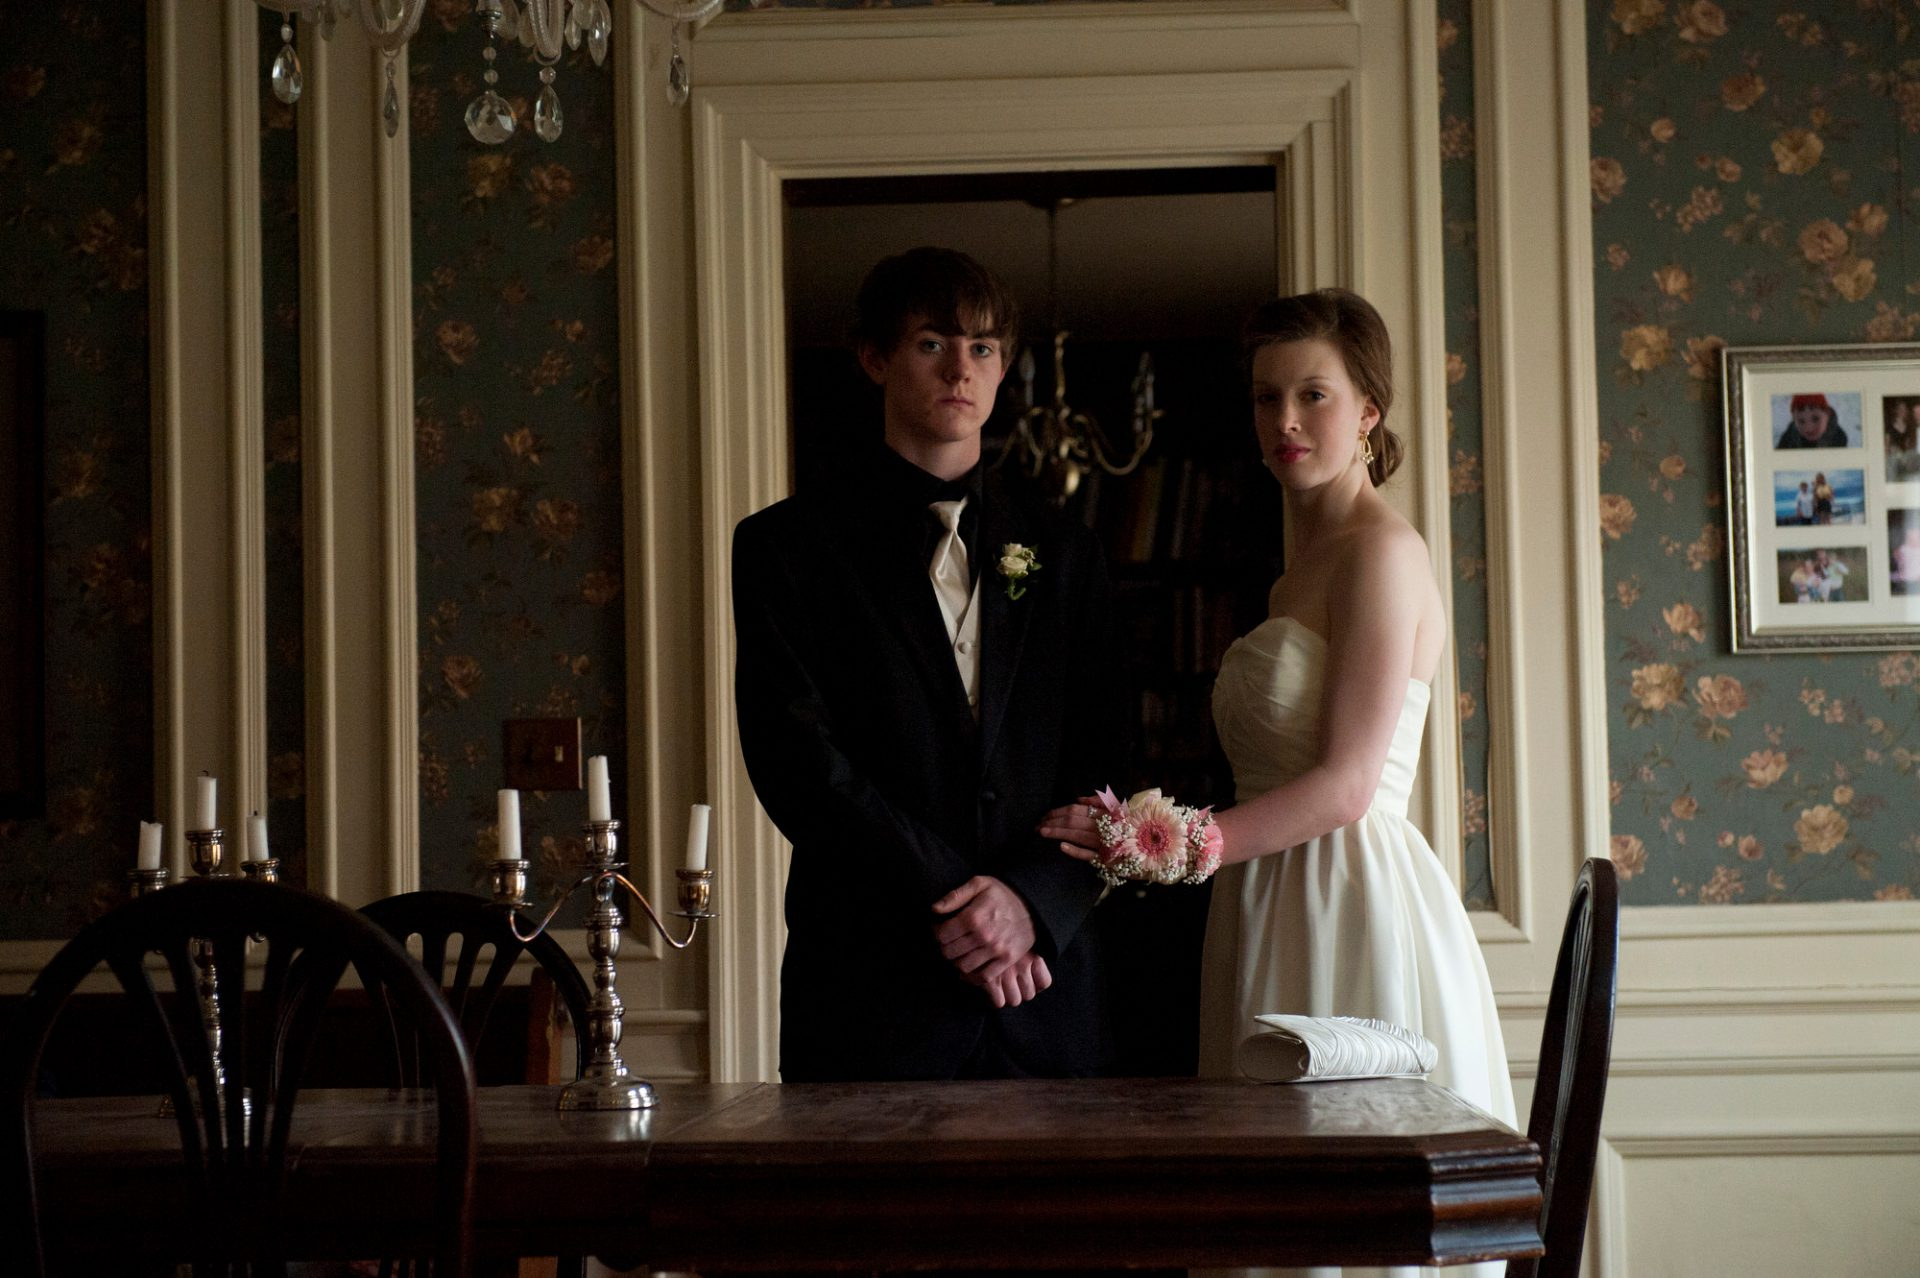 Photo: A solemn young couple readies for prom.